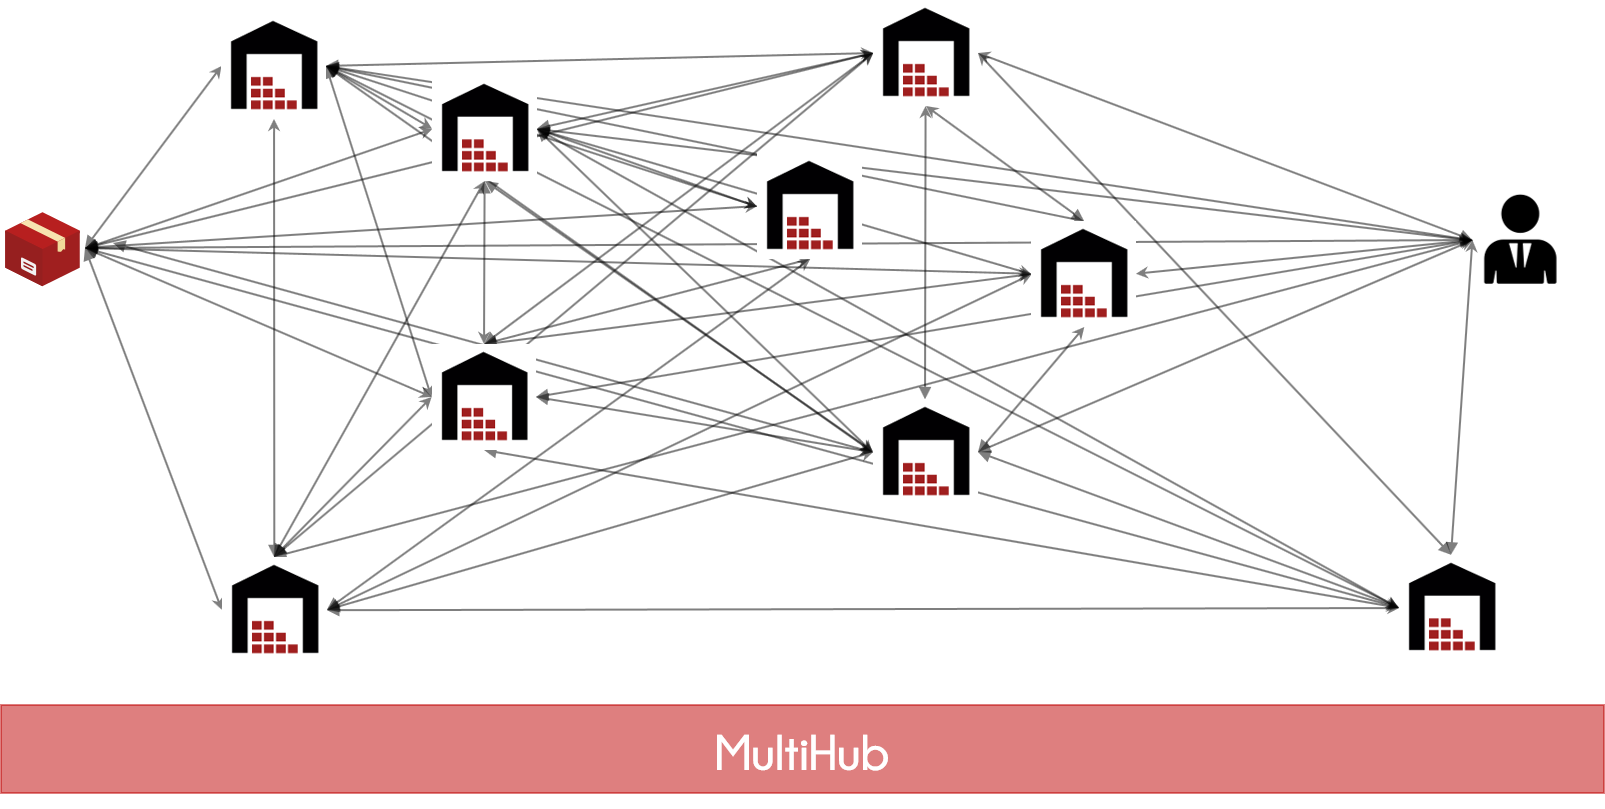 multihub_red